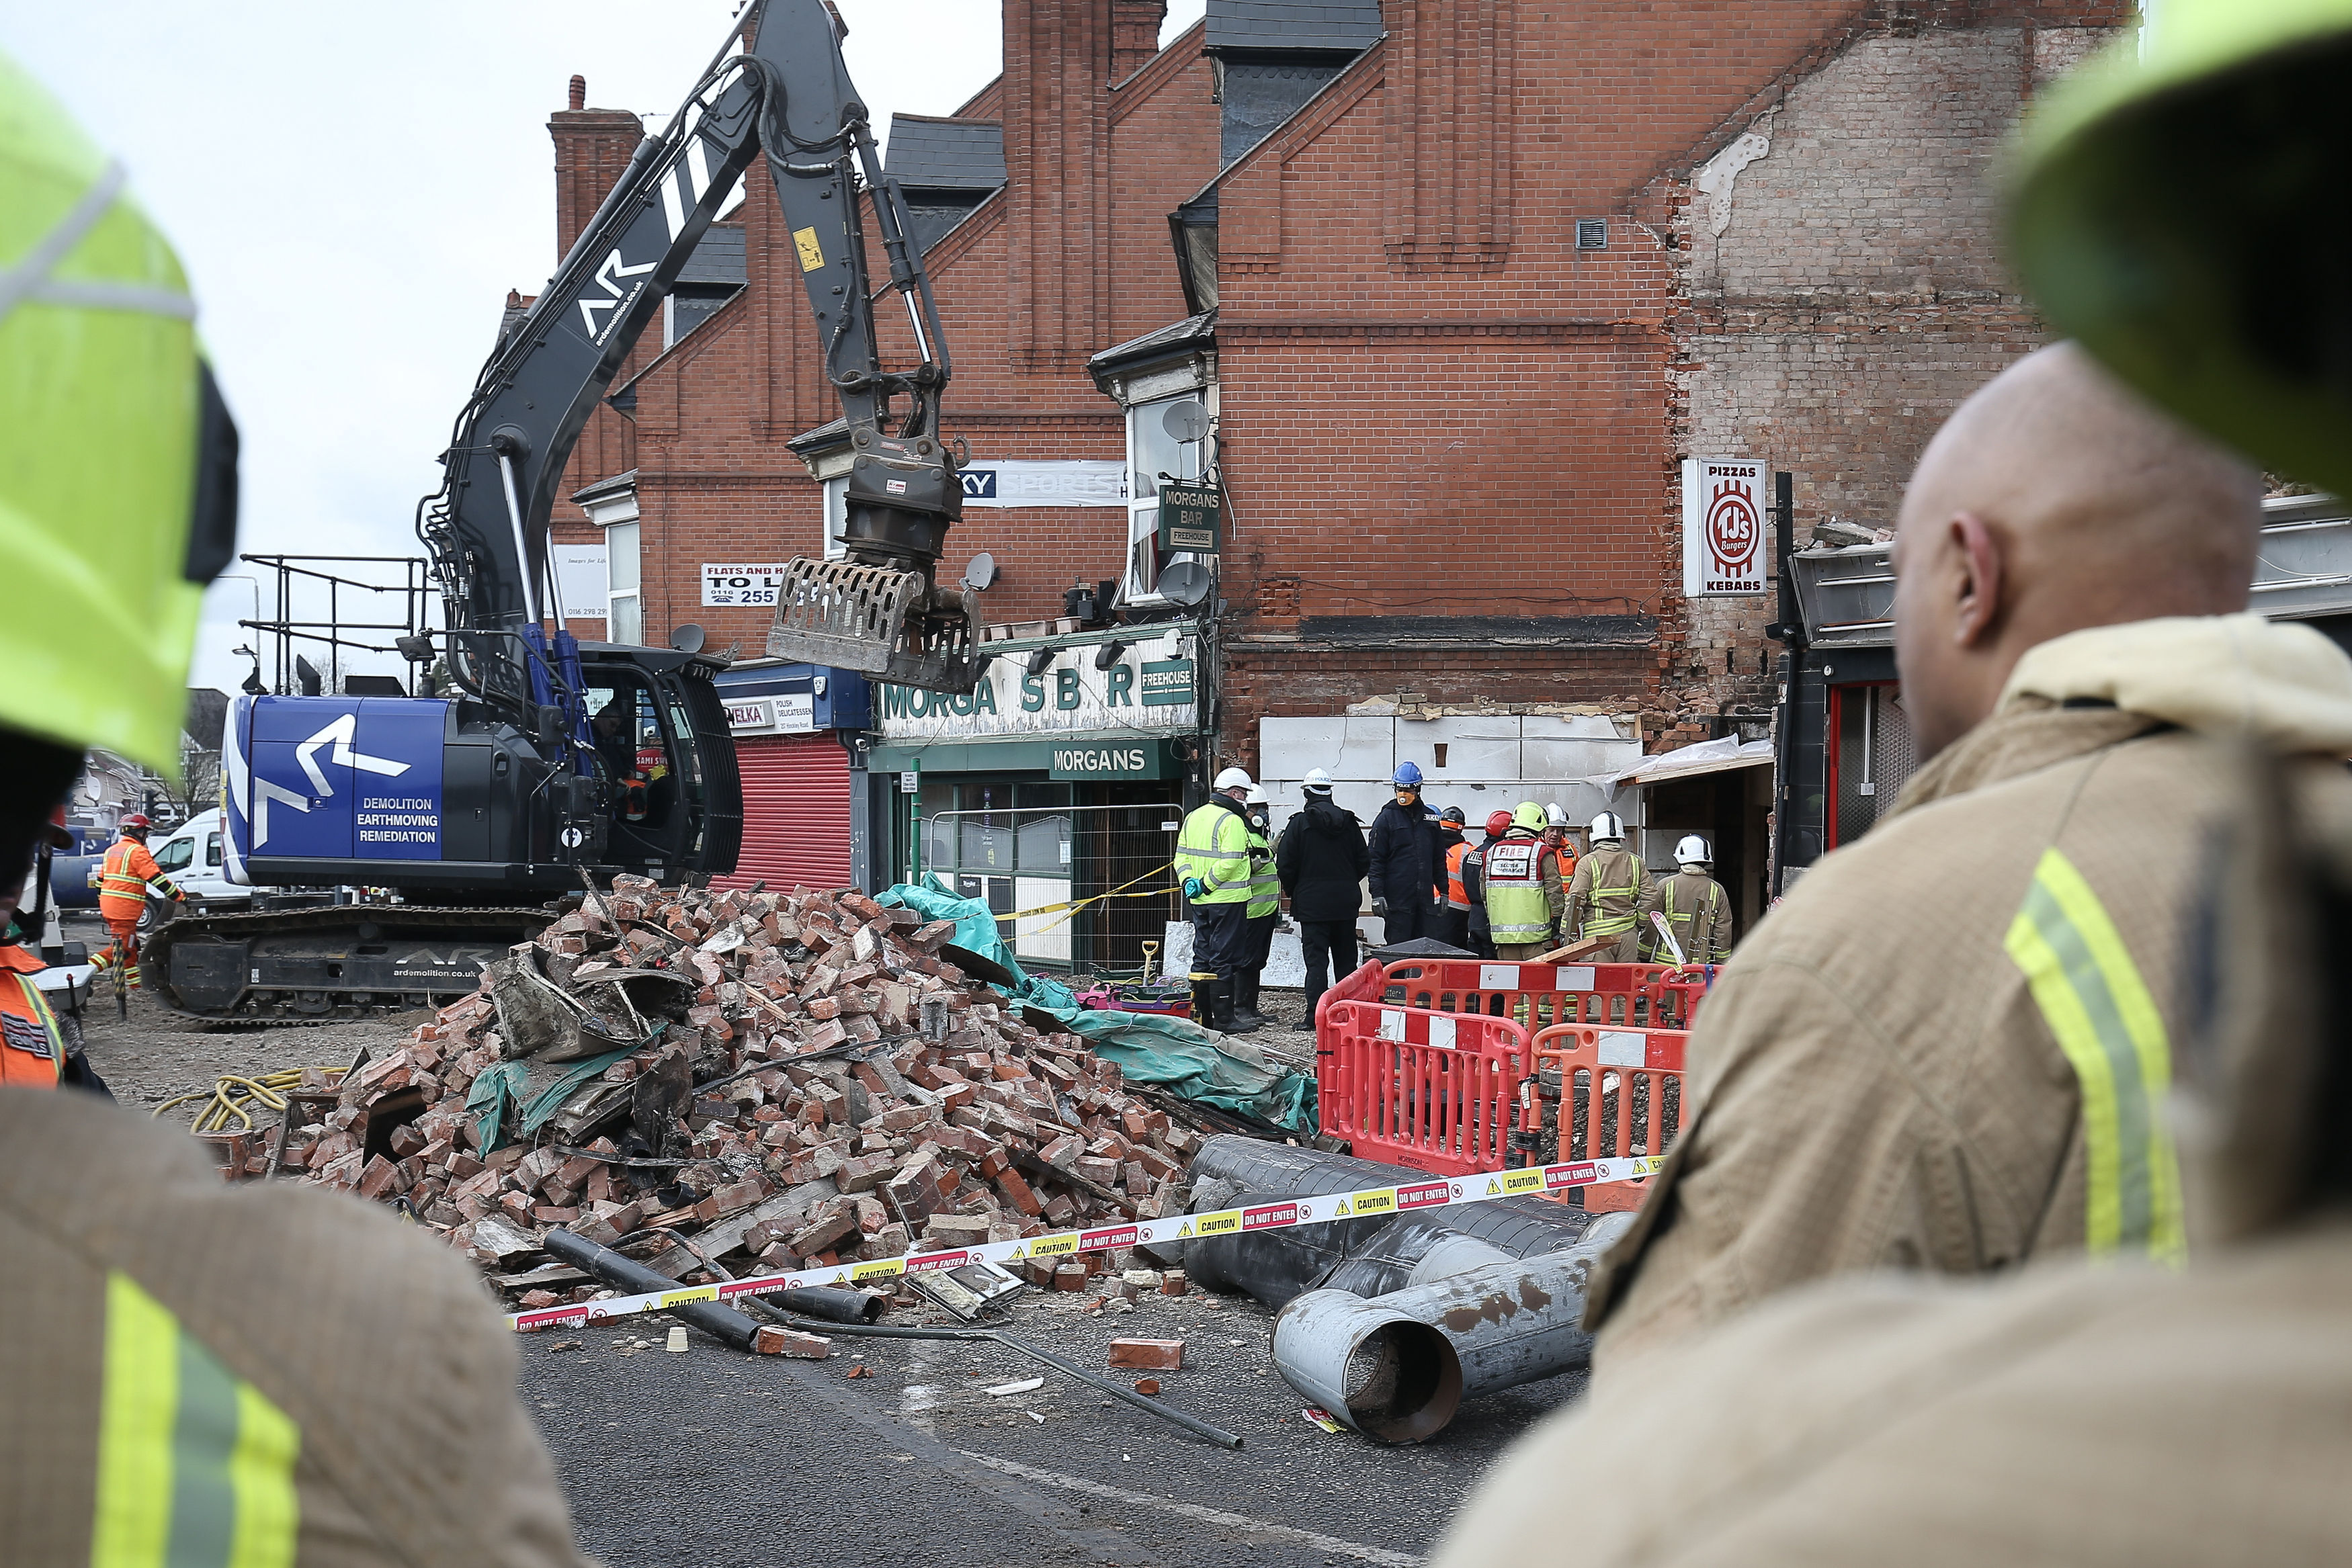 East Anglian man arrested on suspicion of manslaughter following Leicester explosion